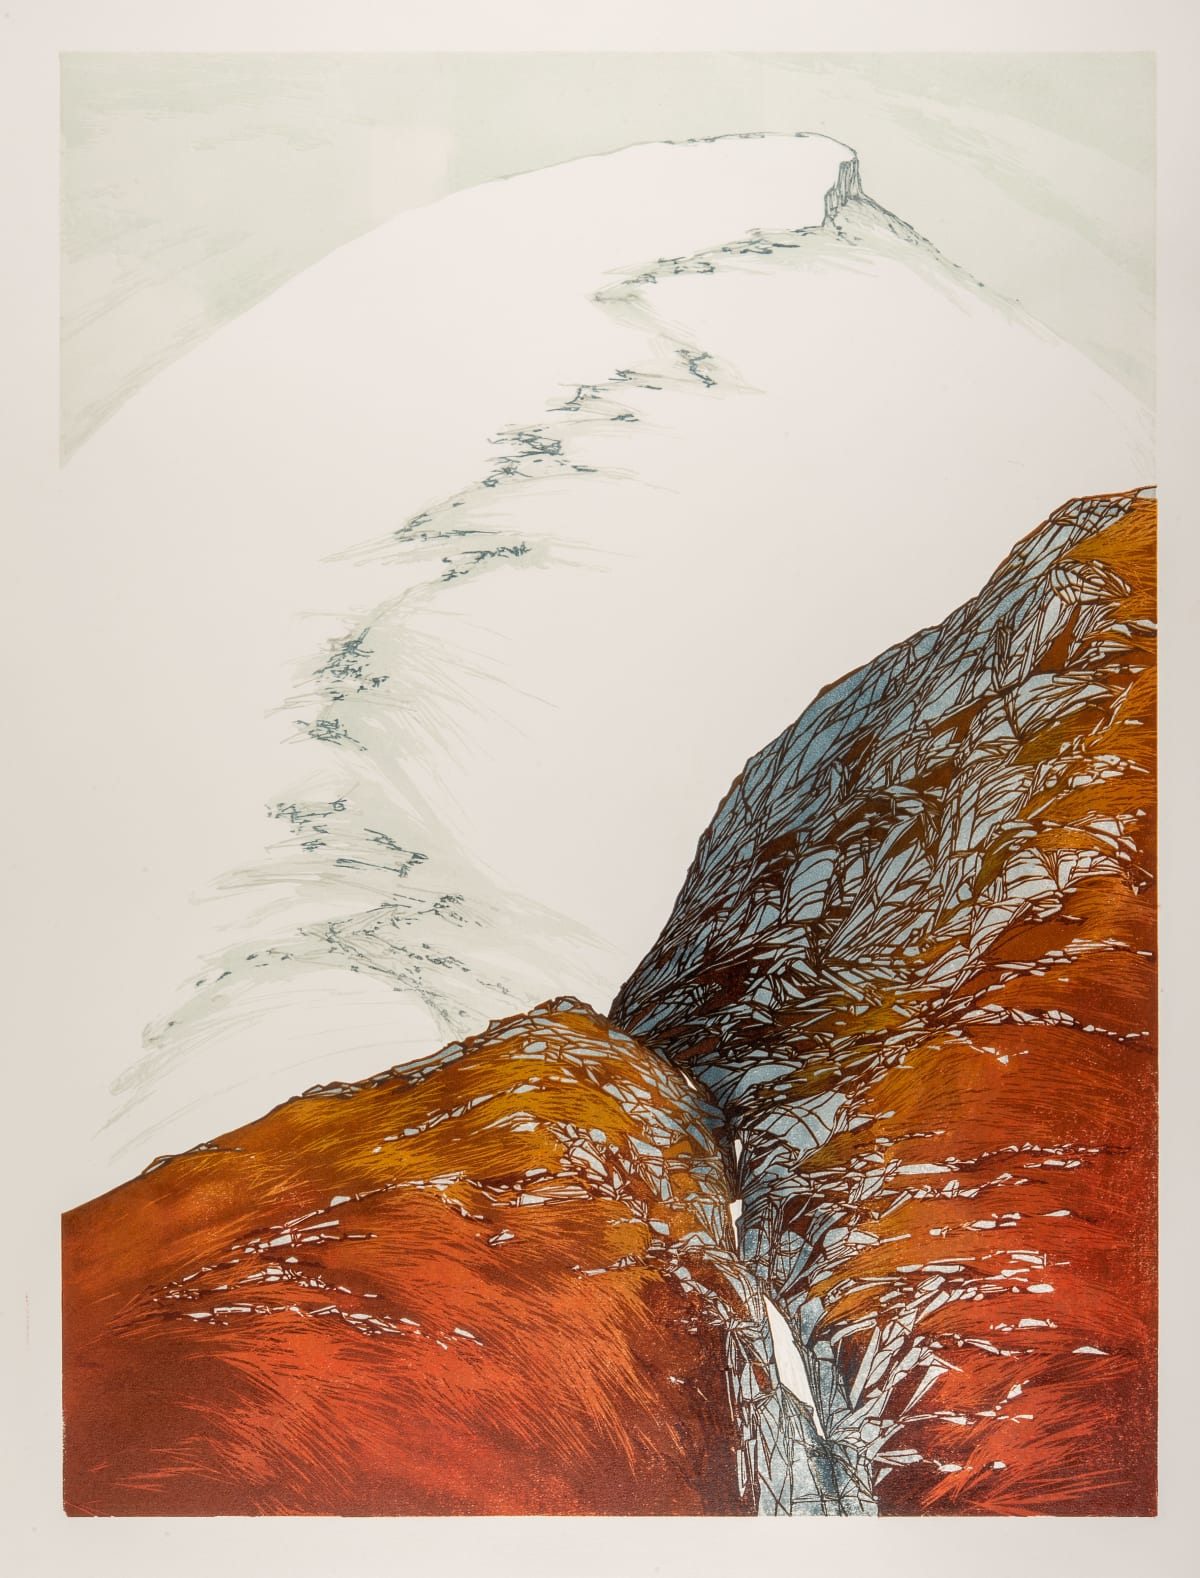 Laura Boswell Red Falls, 2019 Linocut 44 x 59 x 3 cm 17 3/8 x 23 1/4 x 1 1/8 in Edition 4 of 13